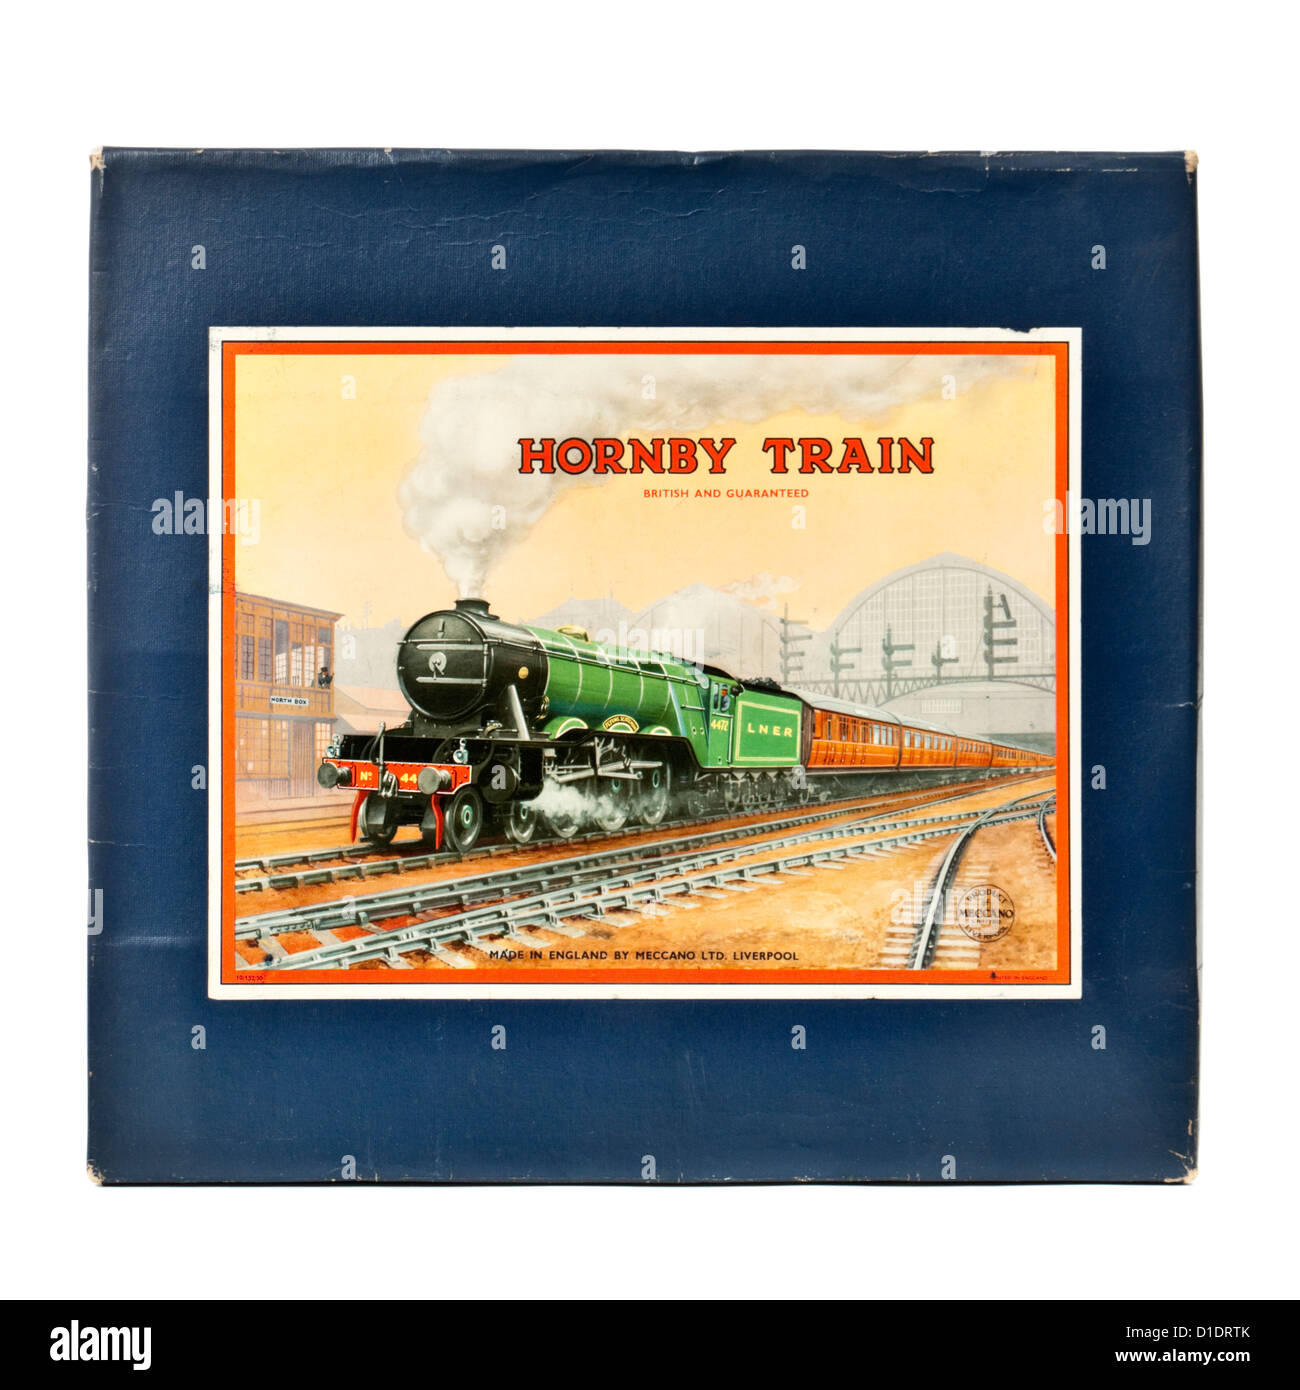 Rare 1950's Hornby (Meccano) No 101 Tank Passenger Train Set with clockwork tinplate LMS locomotive and carriages Stock Photo